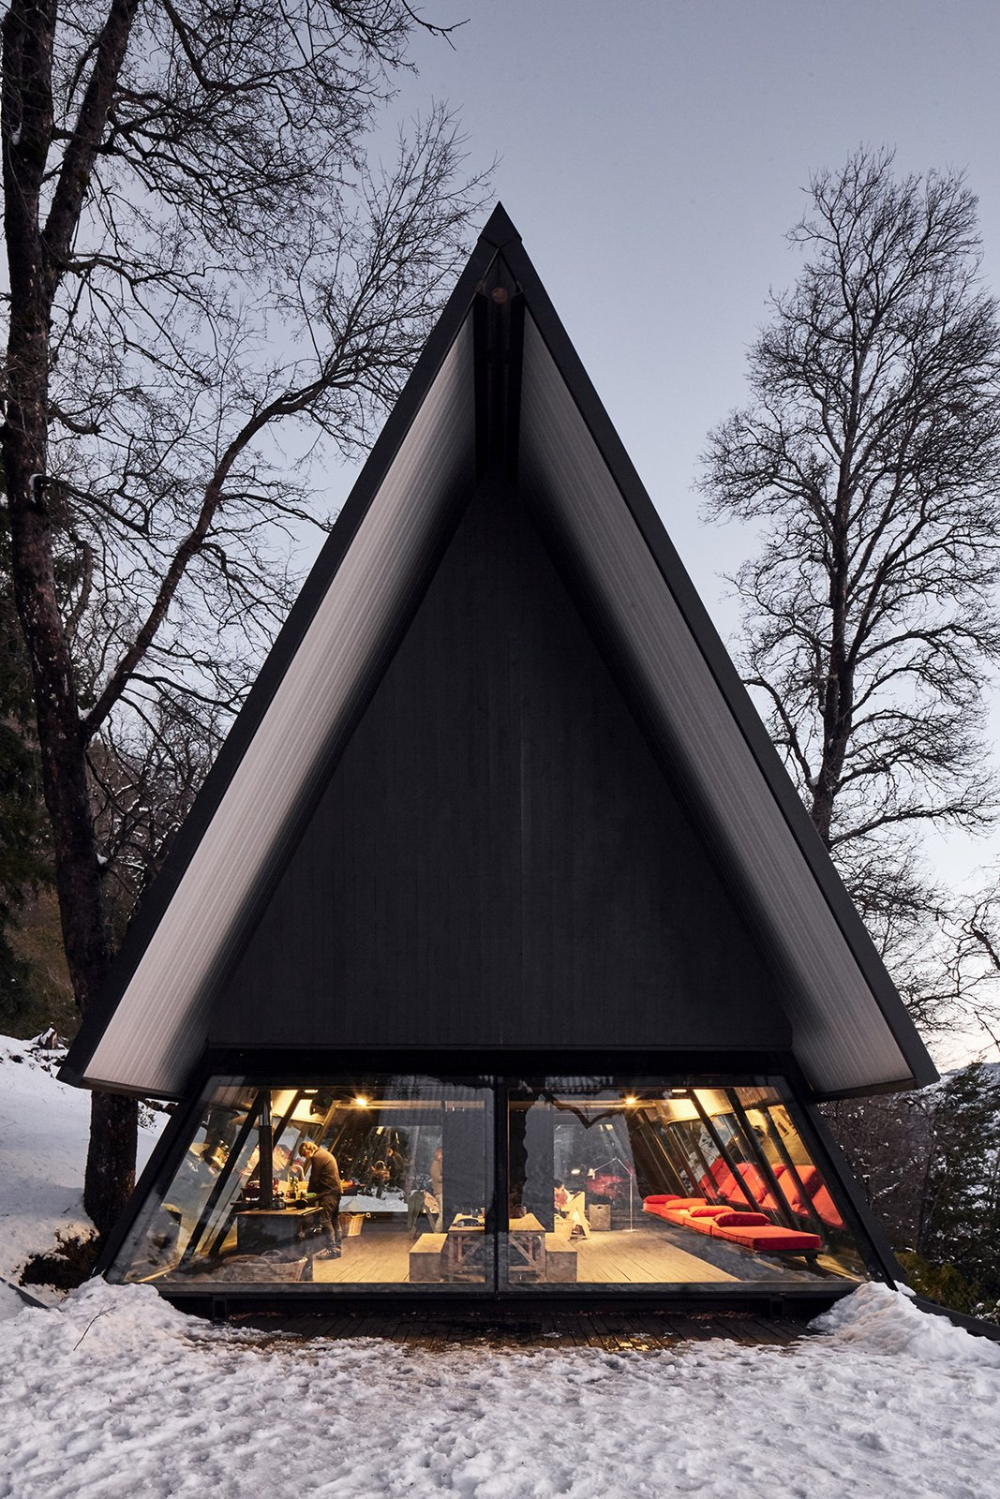 Photo 6 of 16 in Two Prefab Prisms Form an A-Frame